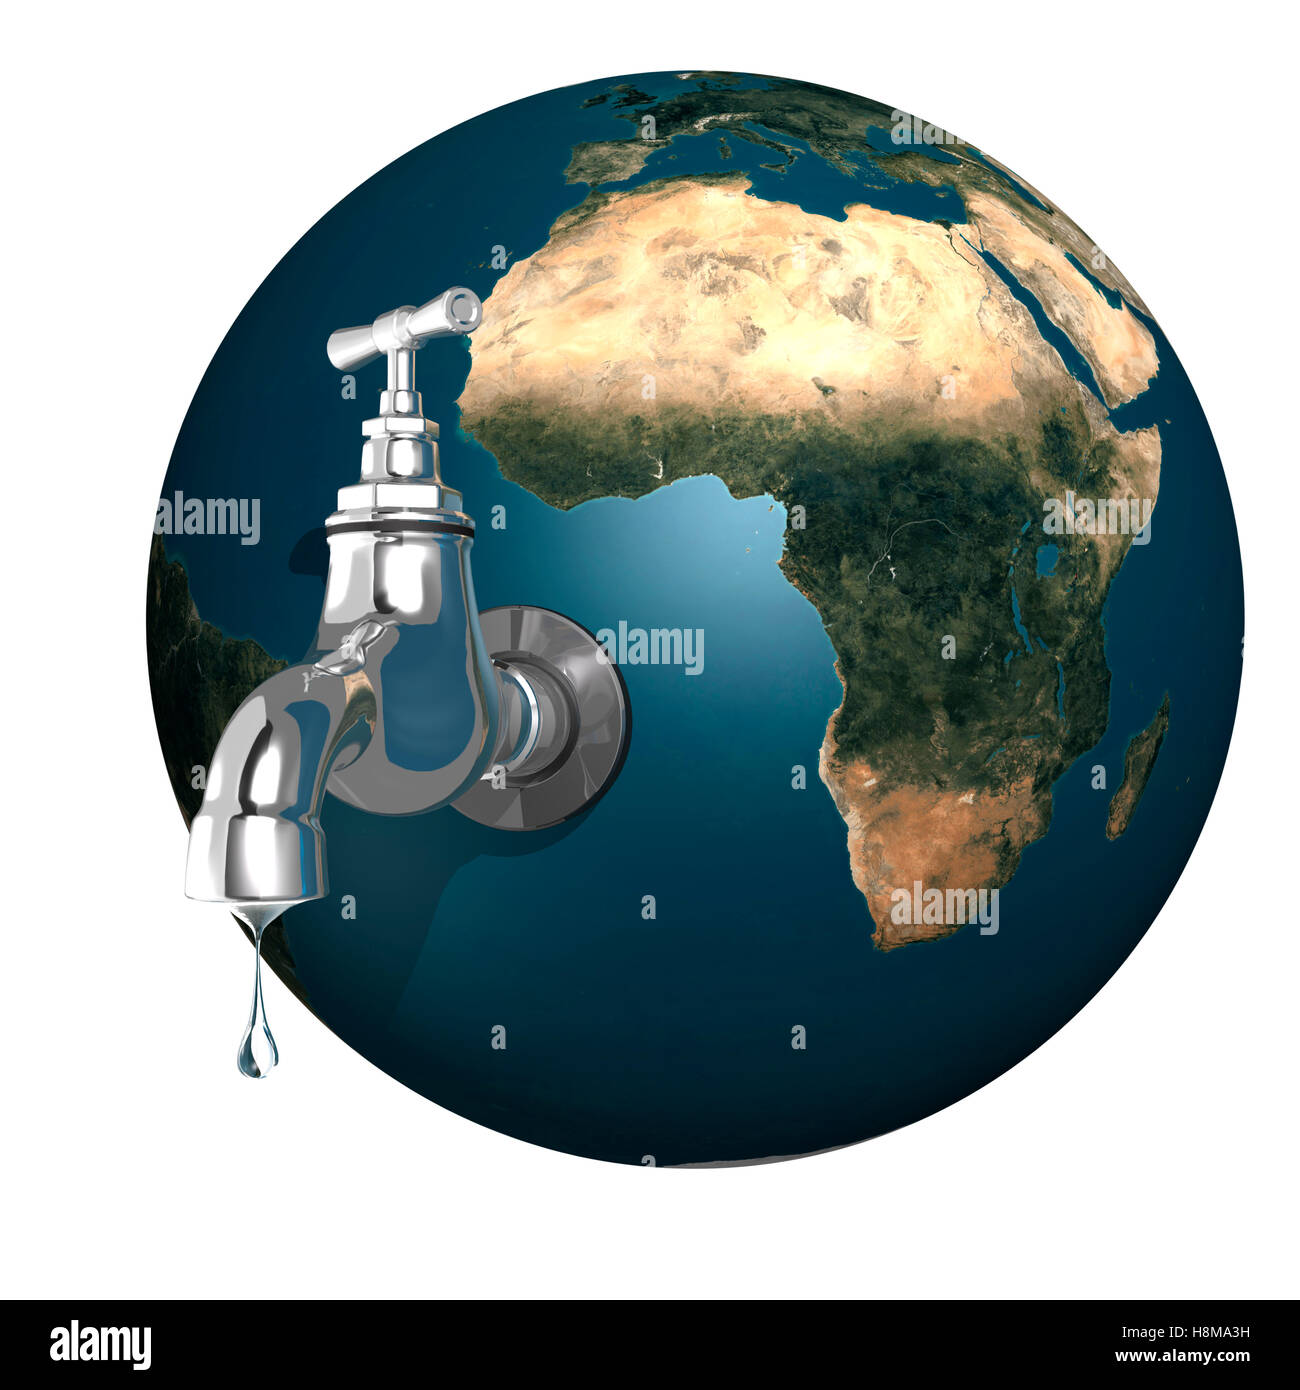 Water dripping from an open tap attached to the Earth, conceptual illustration - Stock Image